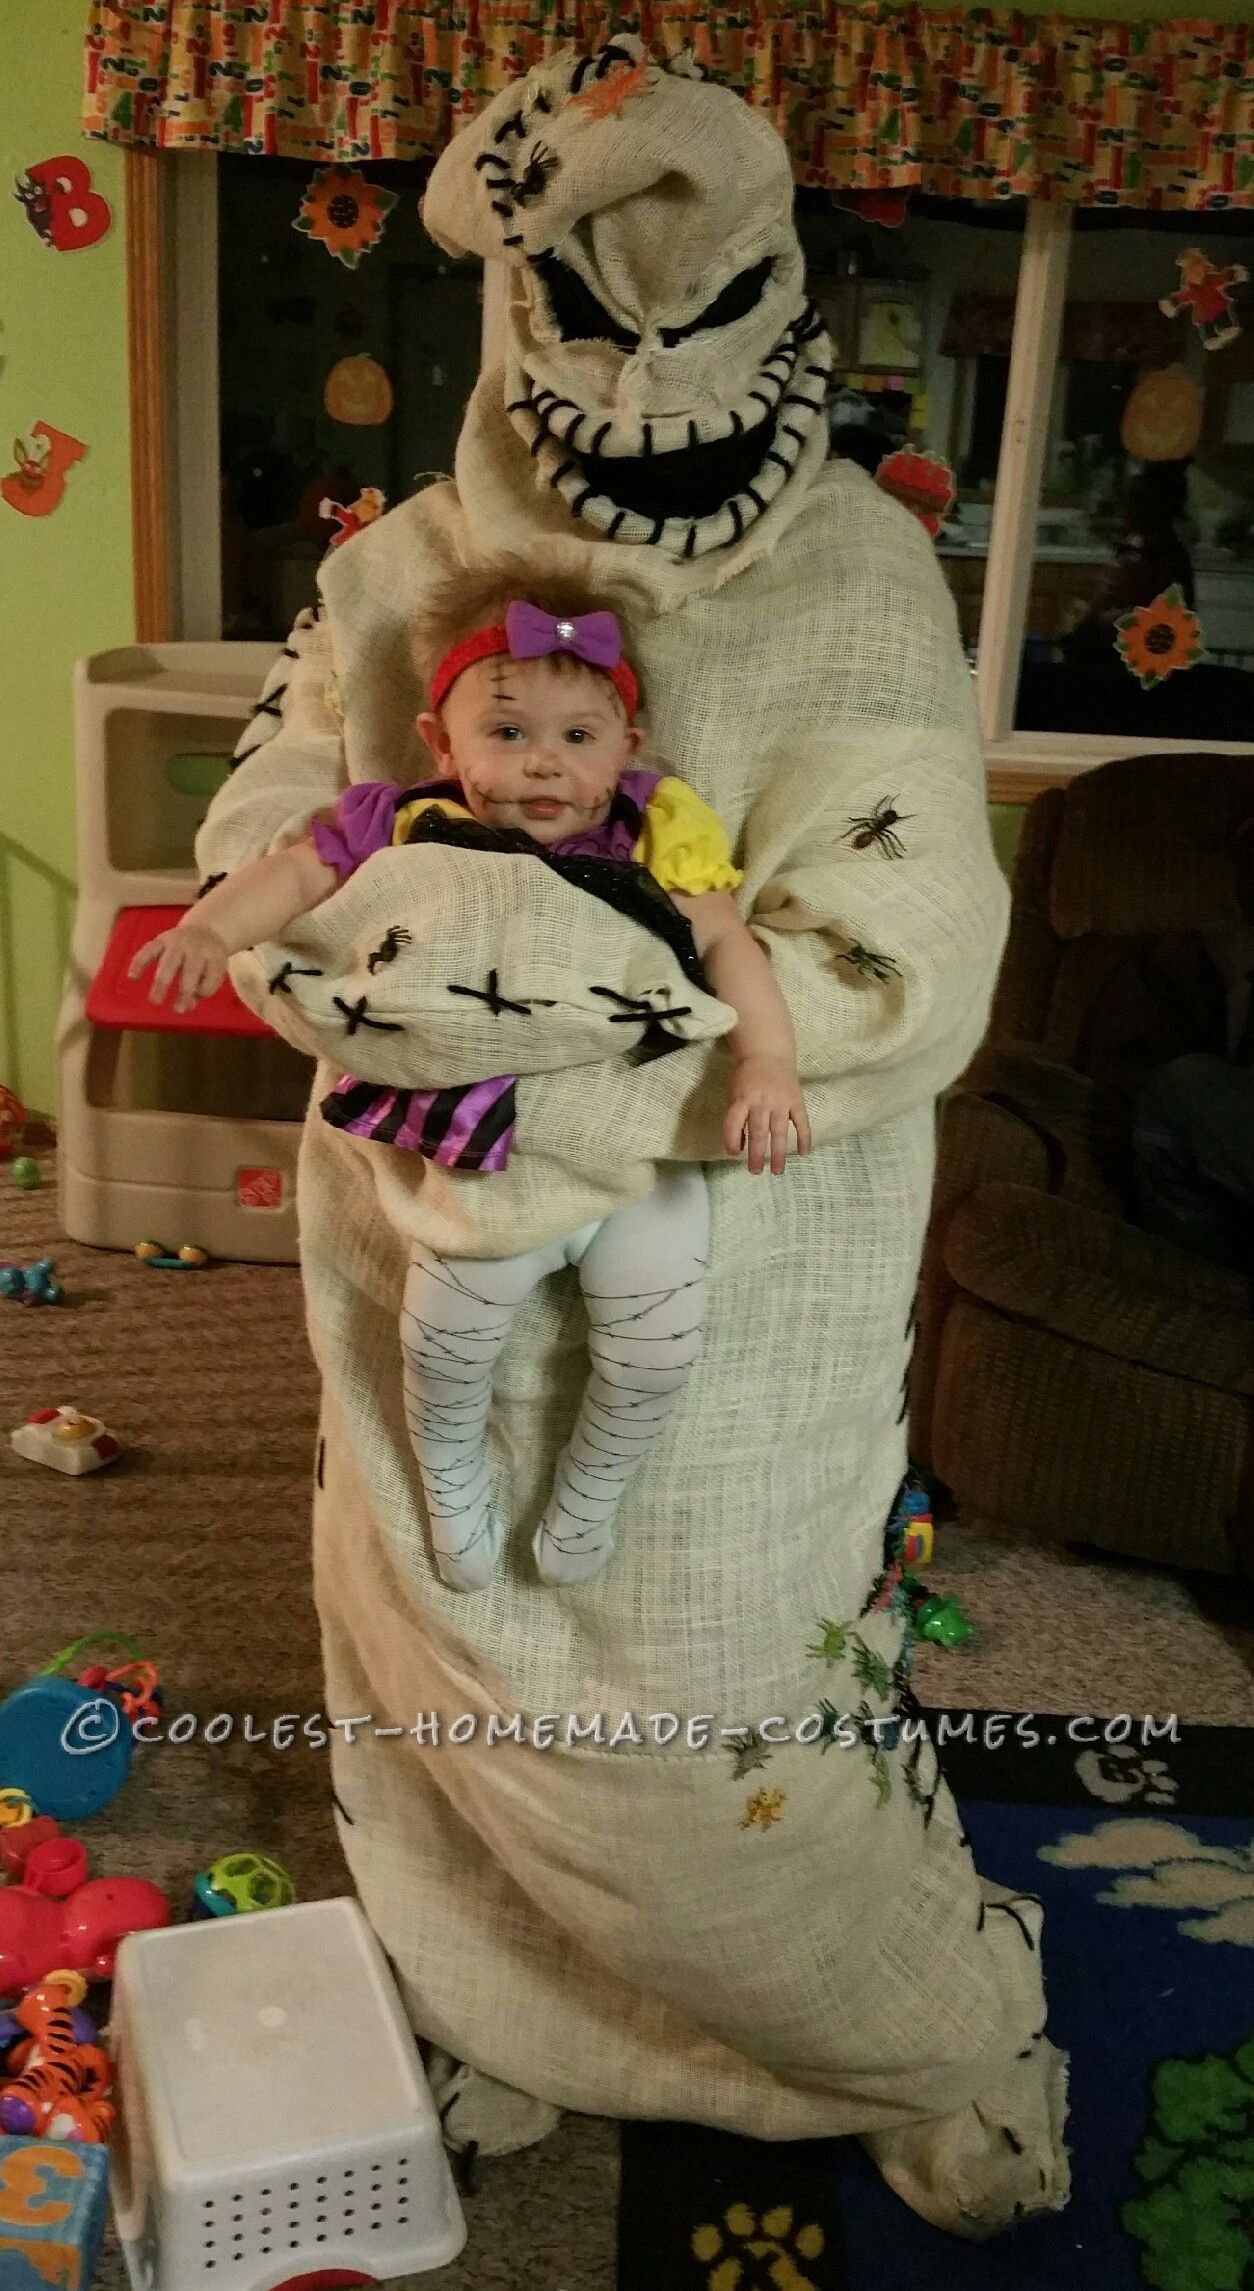 Coolest Oogie Boogie Costume and Baby Sally Doll ...